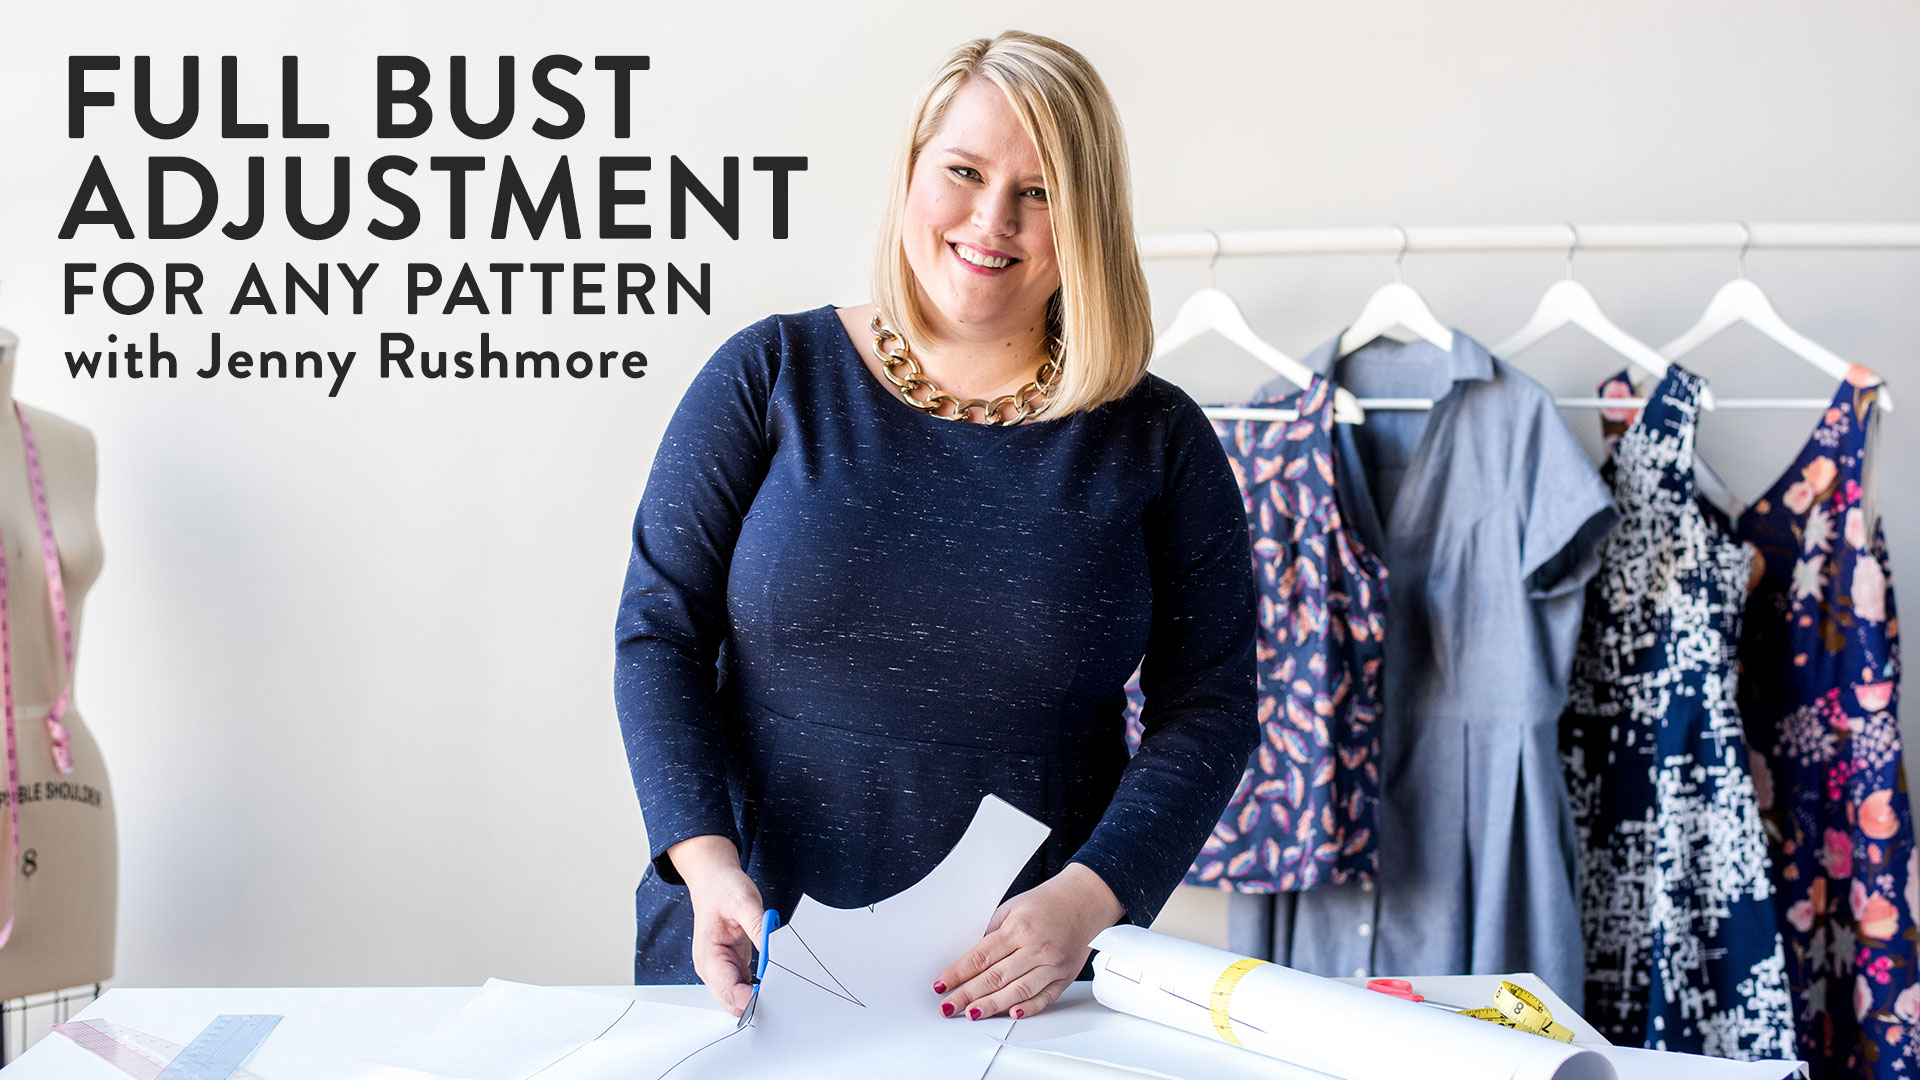 Full Bust Adjustment for Any Pattern